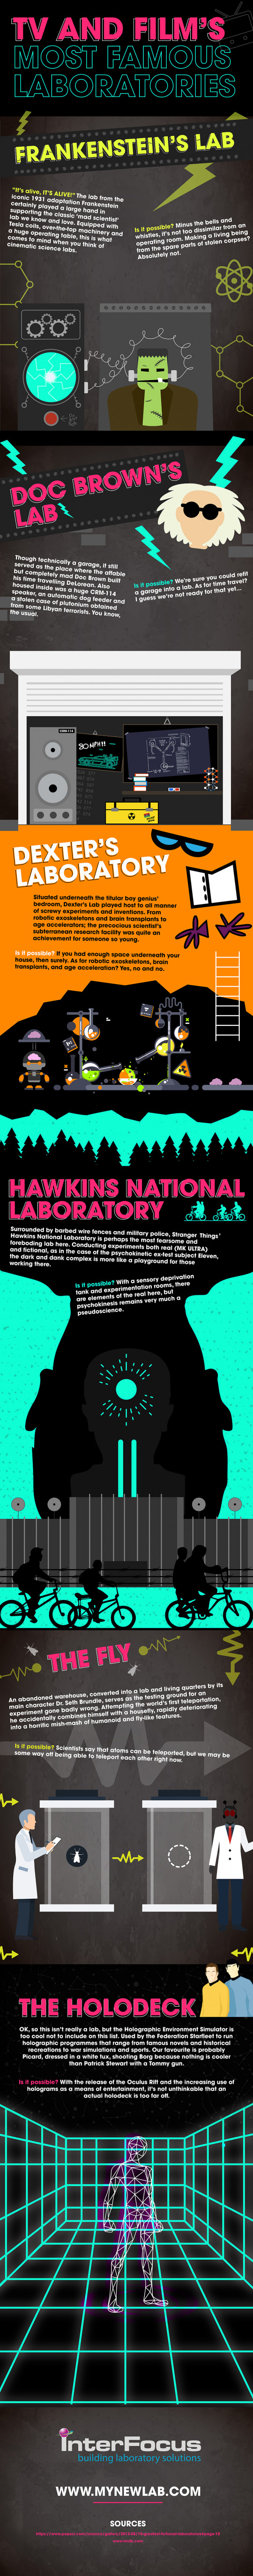 TV and Film's Most Famous Laboratories